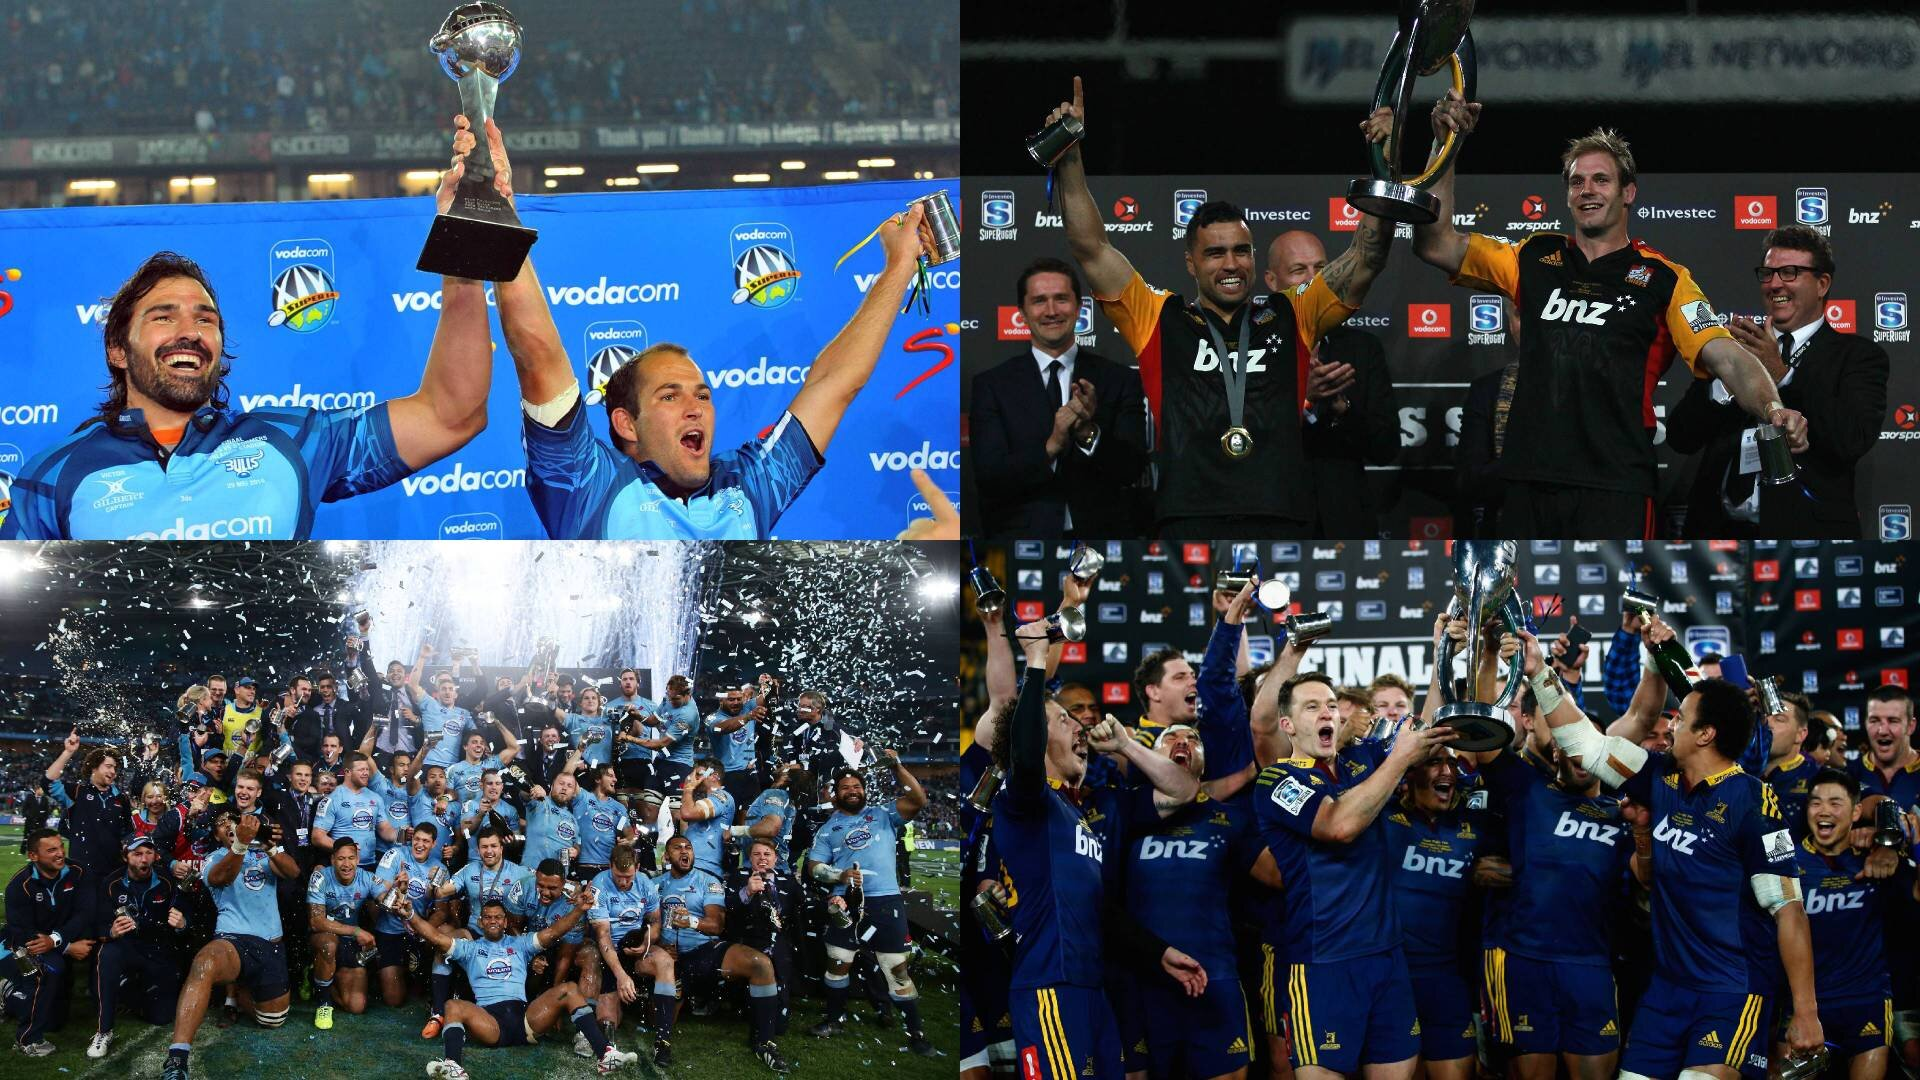 Solving the play-off puzzle: The permutations for your team's Super Rugby quarter-final hopes